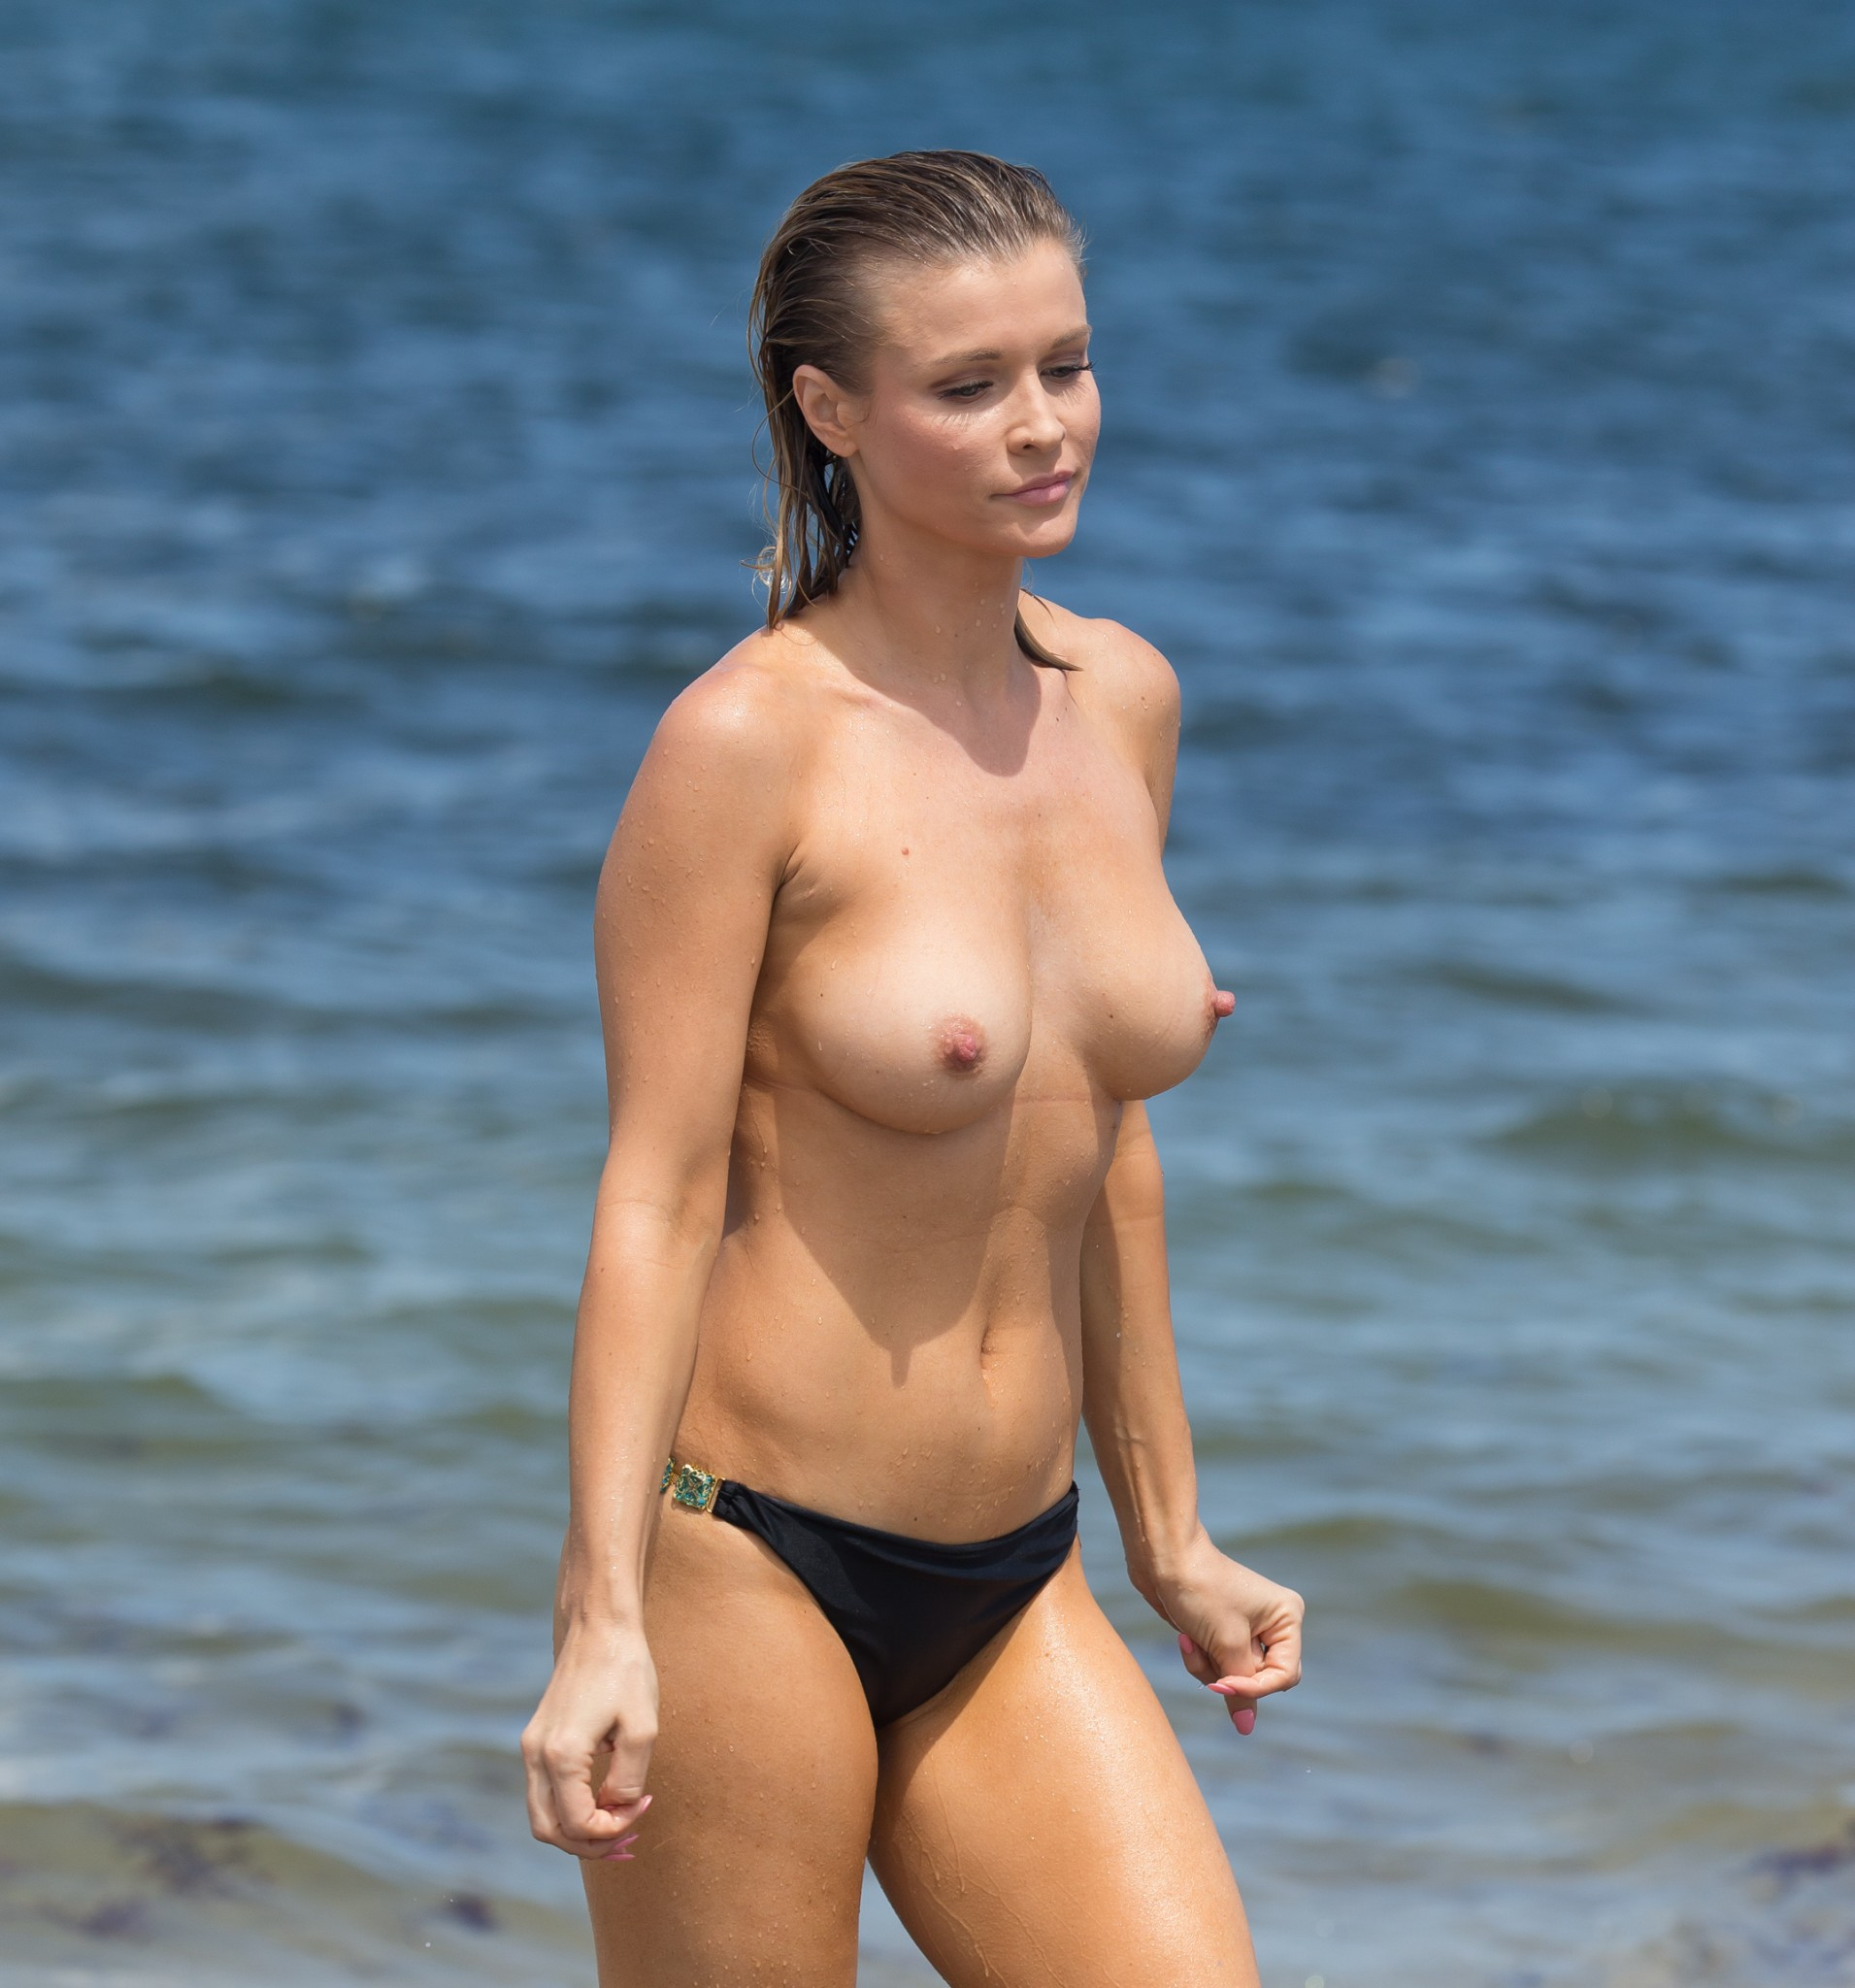 joanna-krupa-topless-at-the-beach-in-miami-36